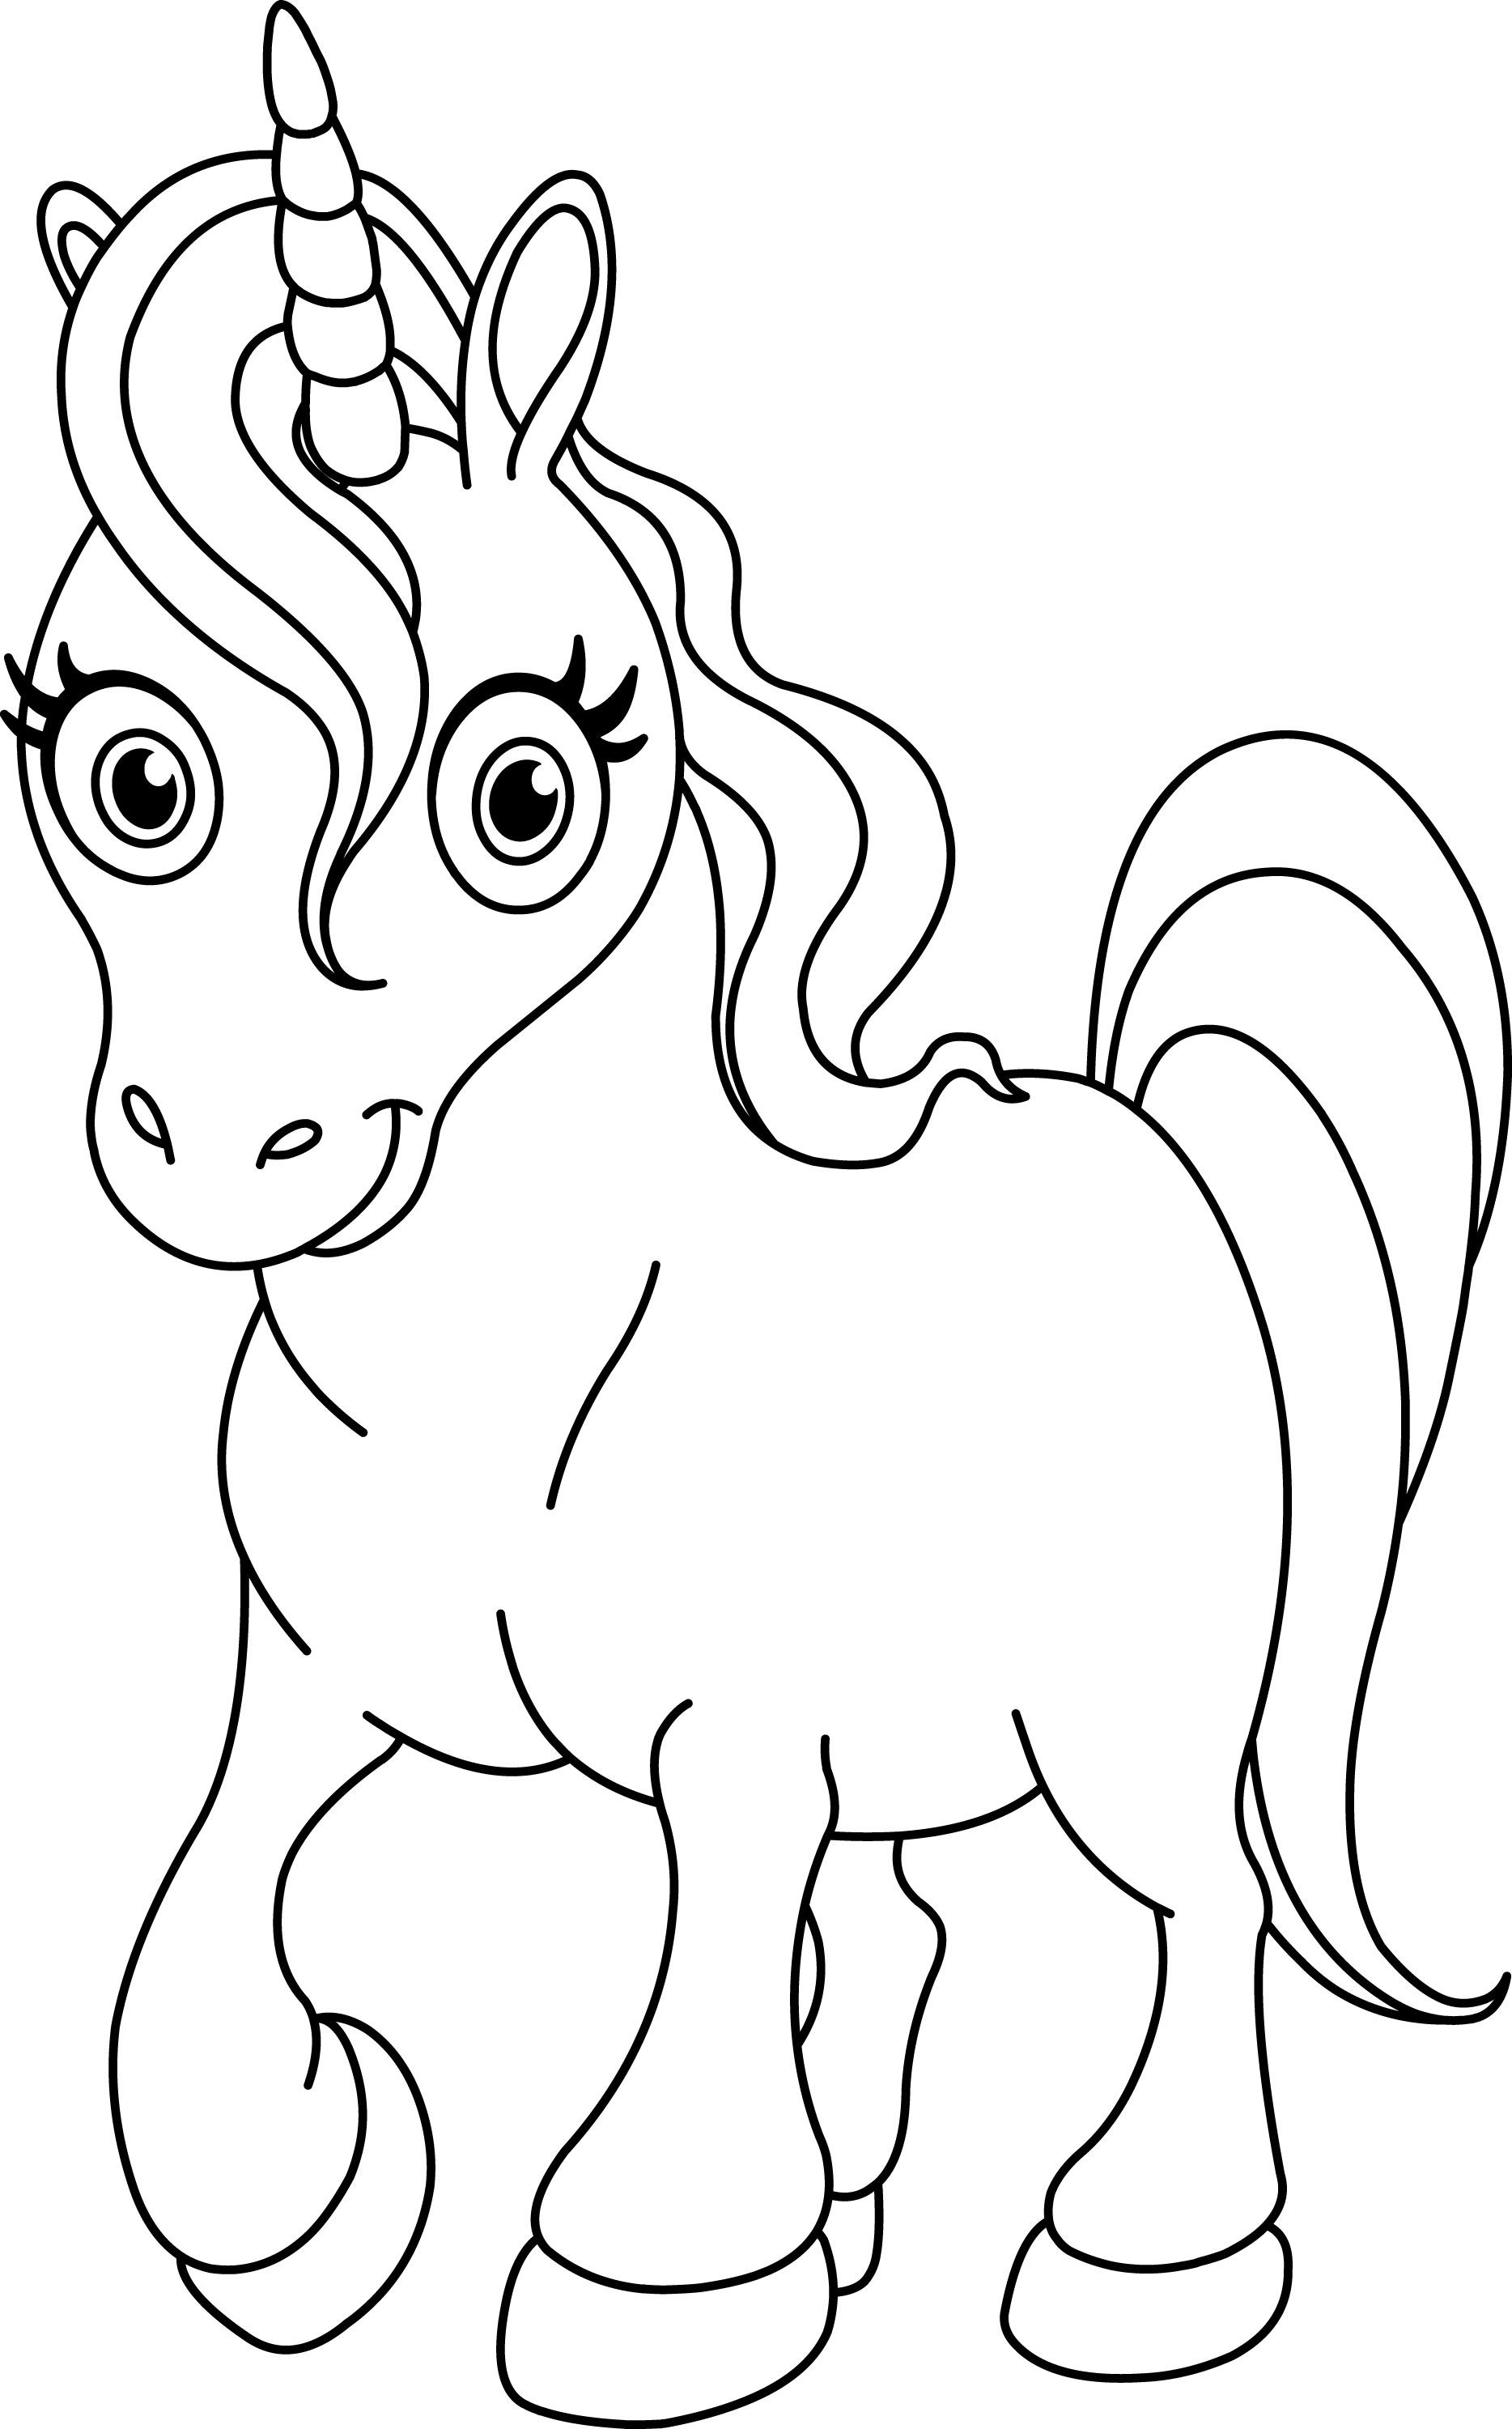 printable unicorn coloring pages # 18